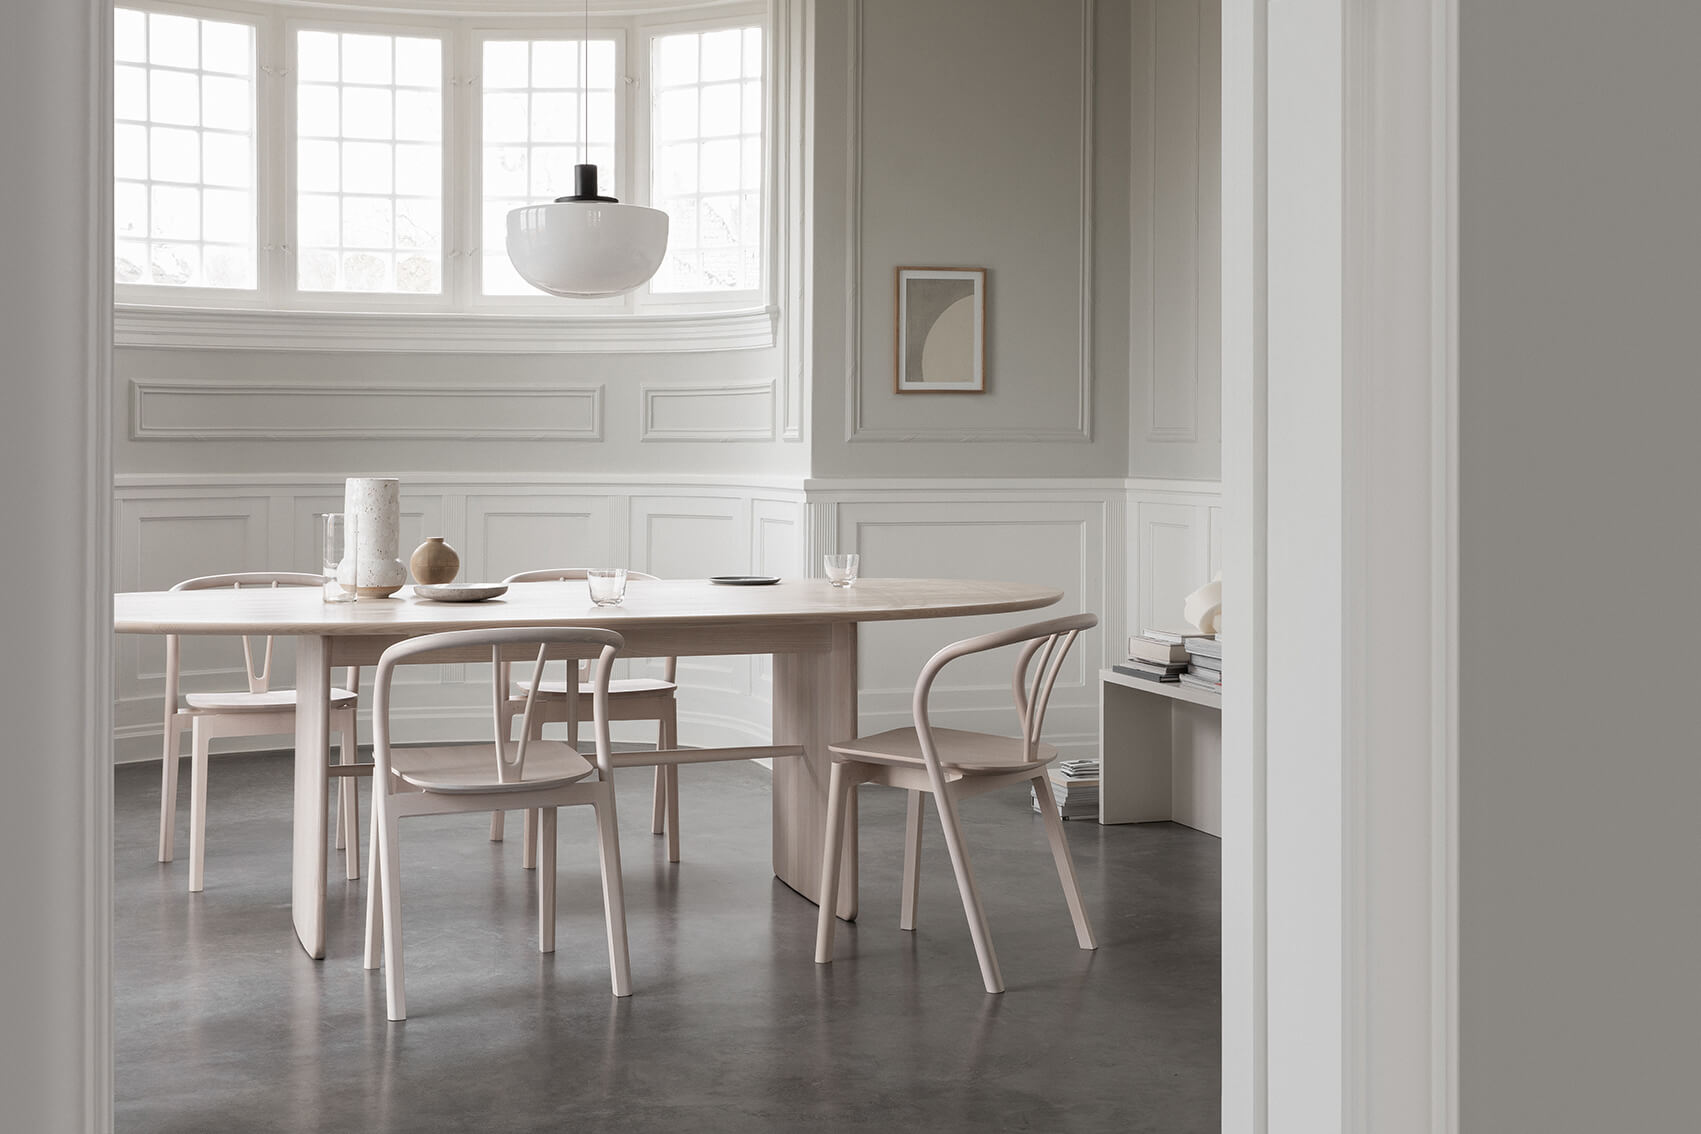 Ercol 'Pennon' Table by Norm Architects with 'Flow' Chairs by Tomoko Azumi